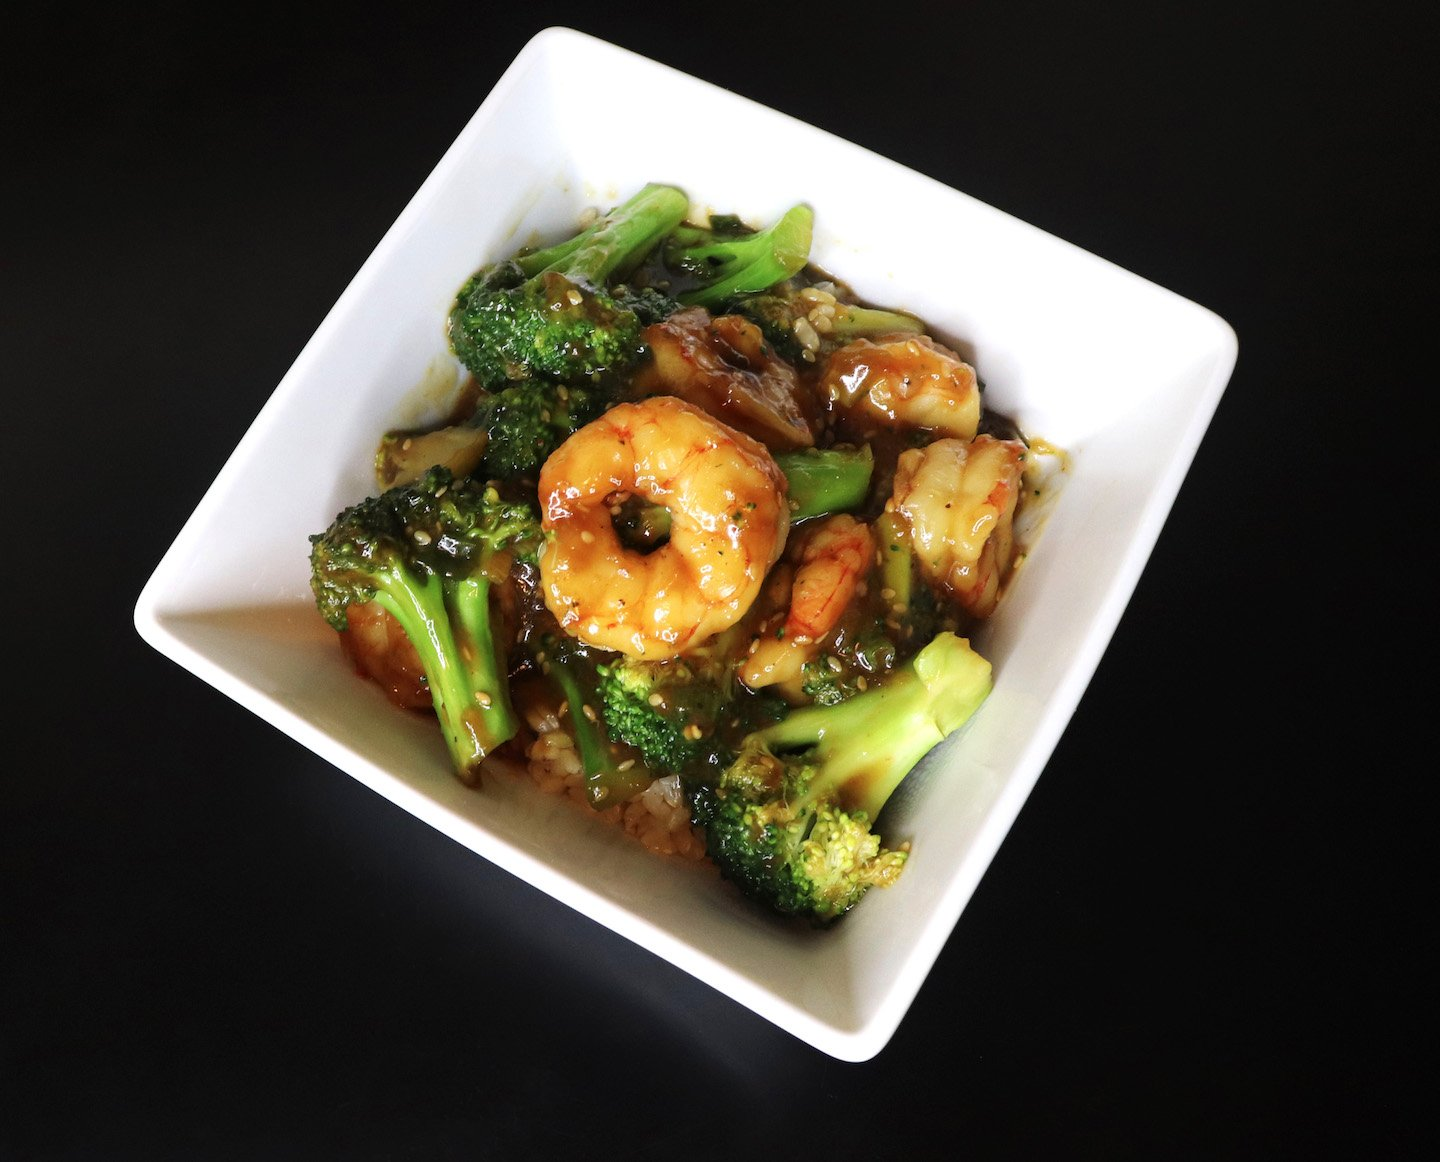 Shrimp and Broccoli Recipe